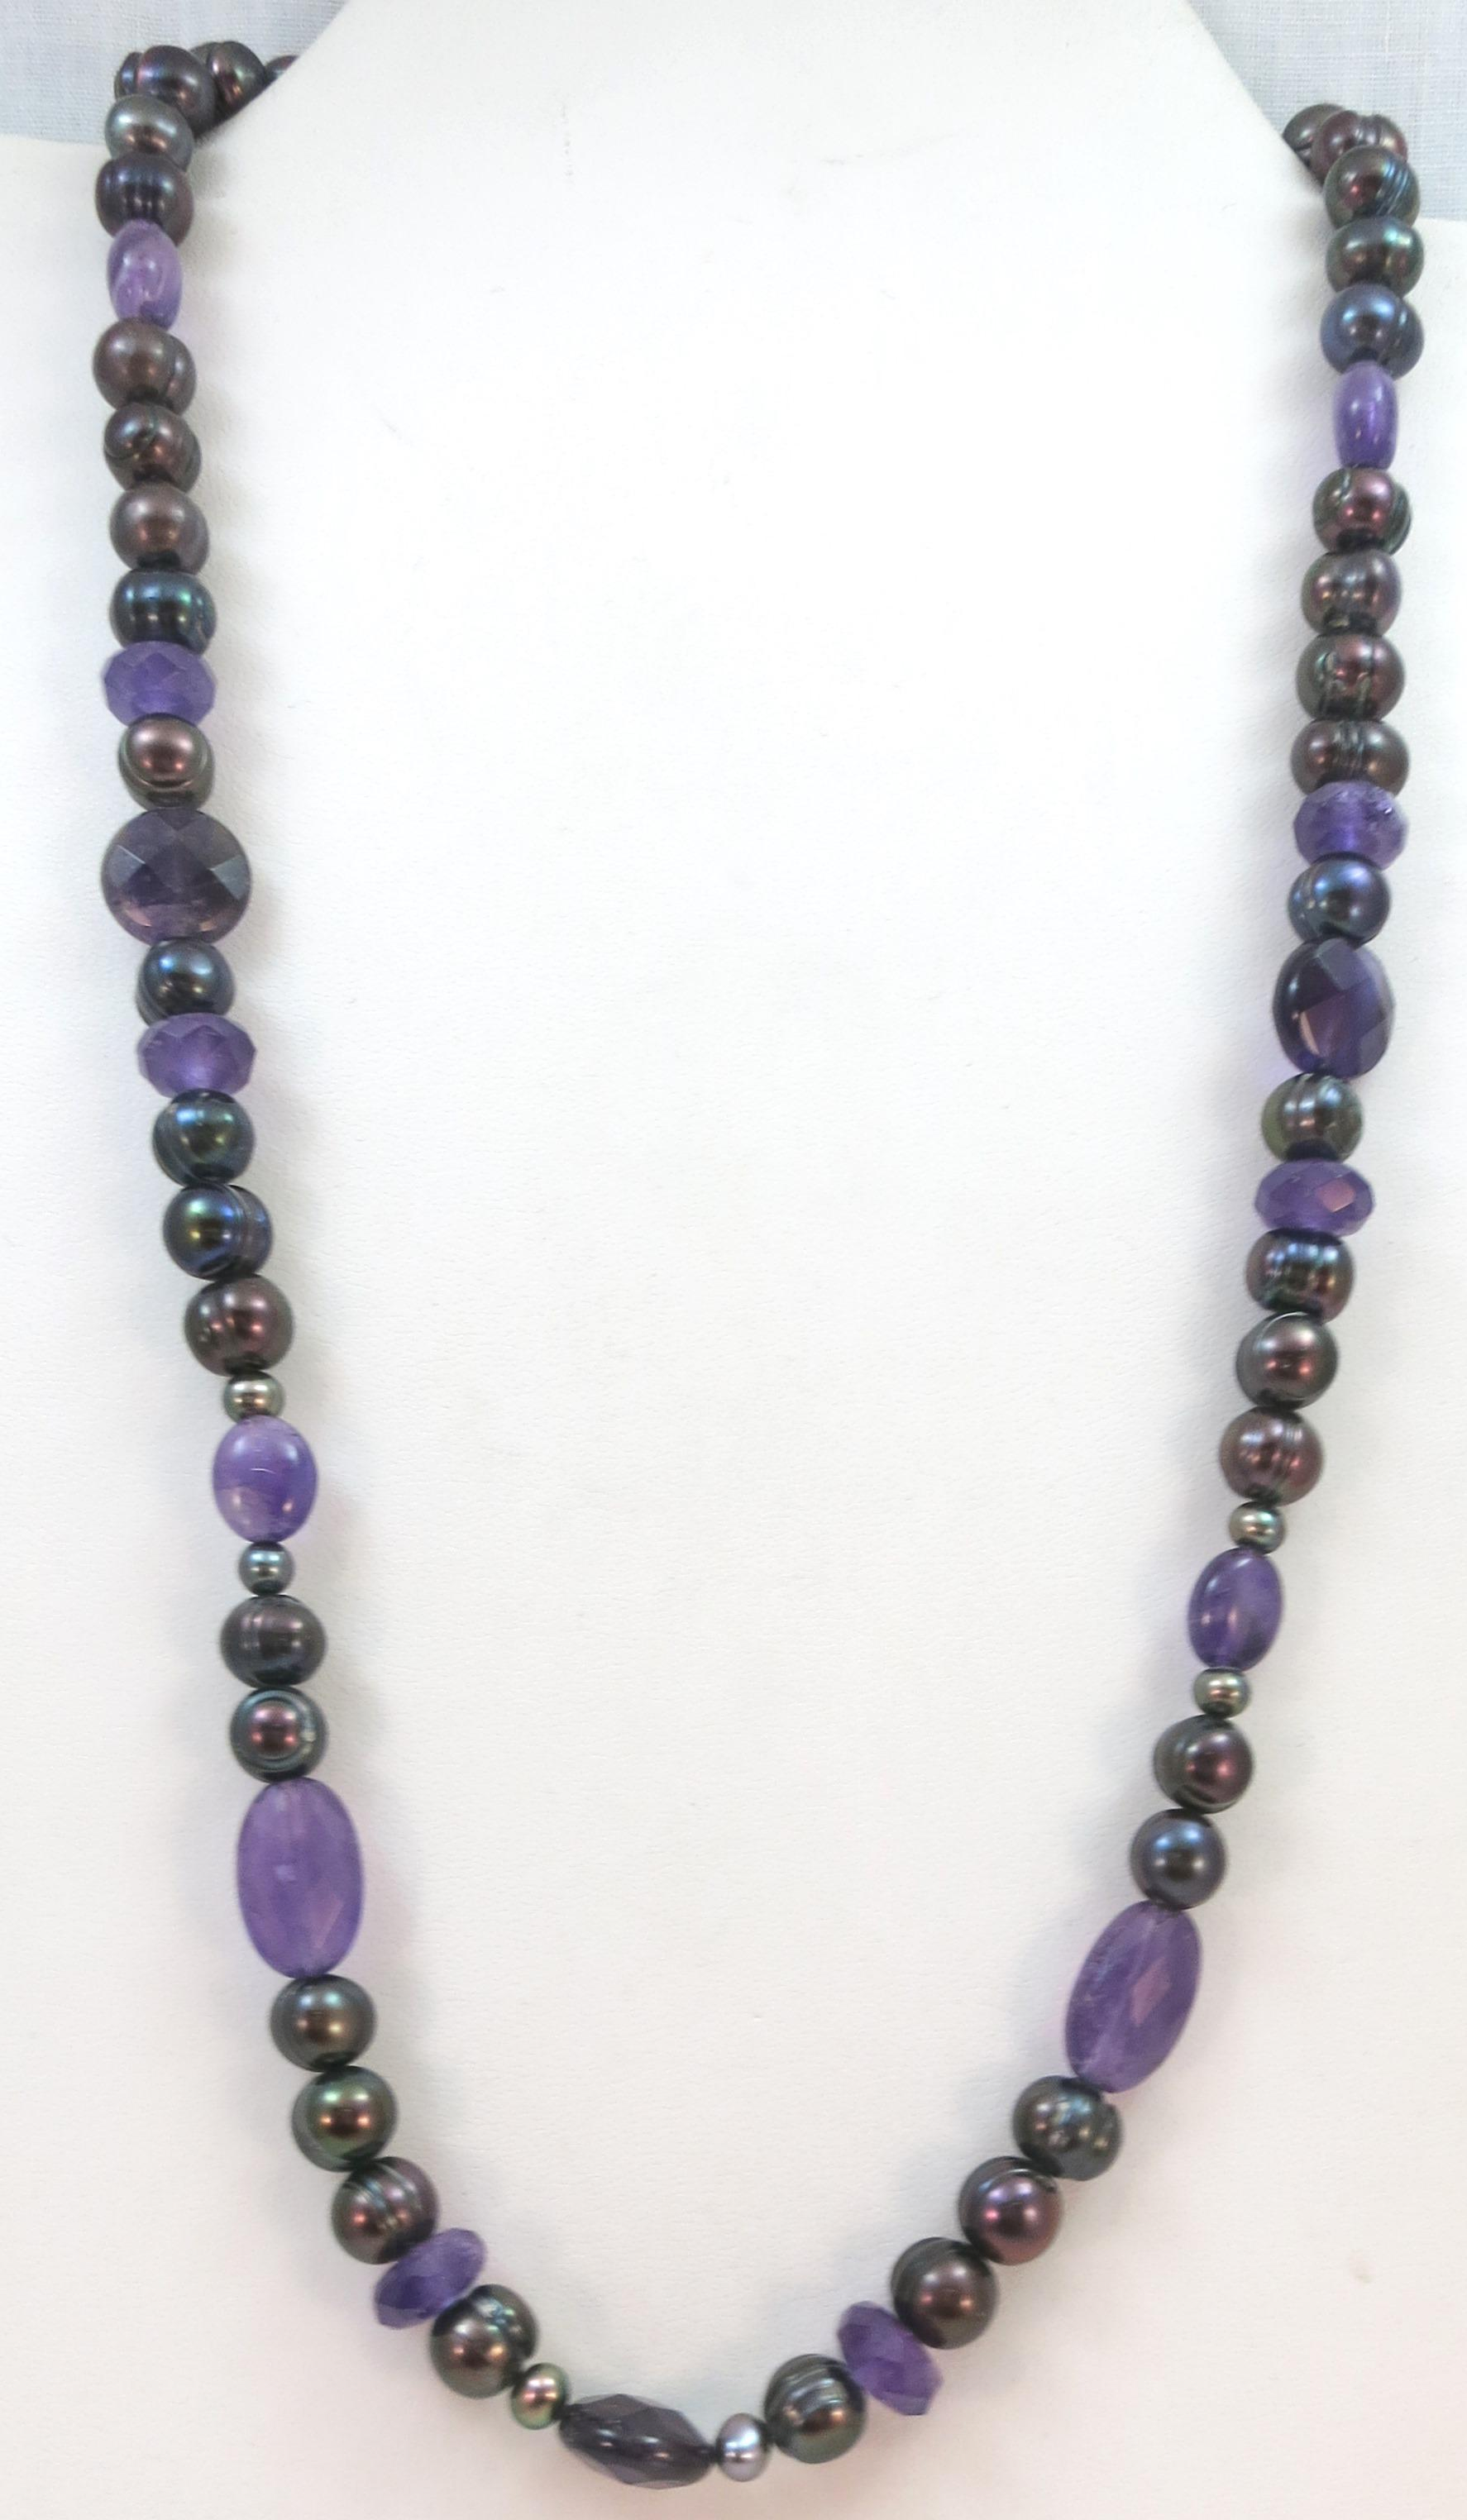 VINTAGE Pearl and Raw Amethyst Bead Necklace  Professionally Restrung